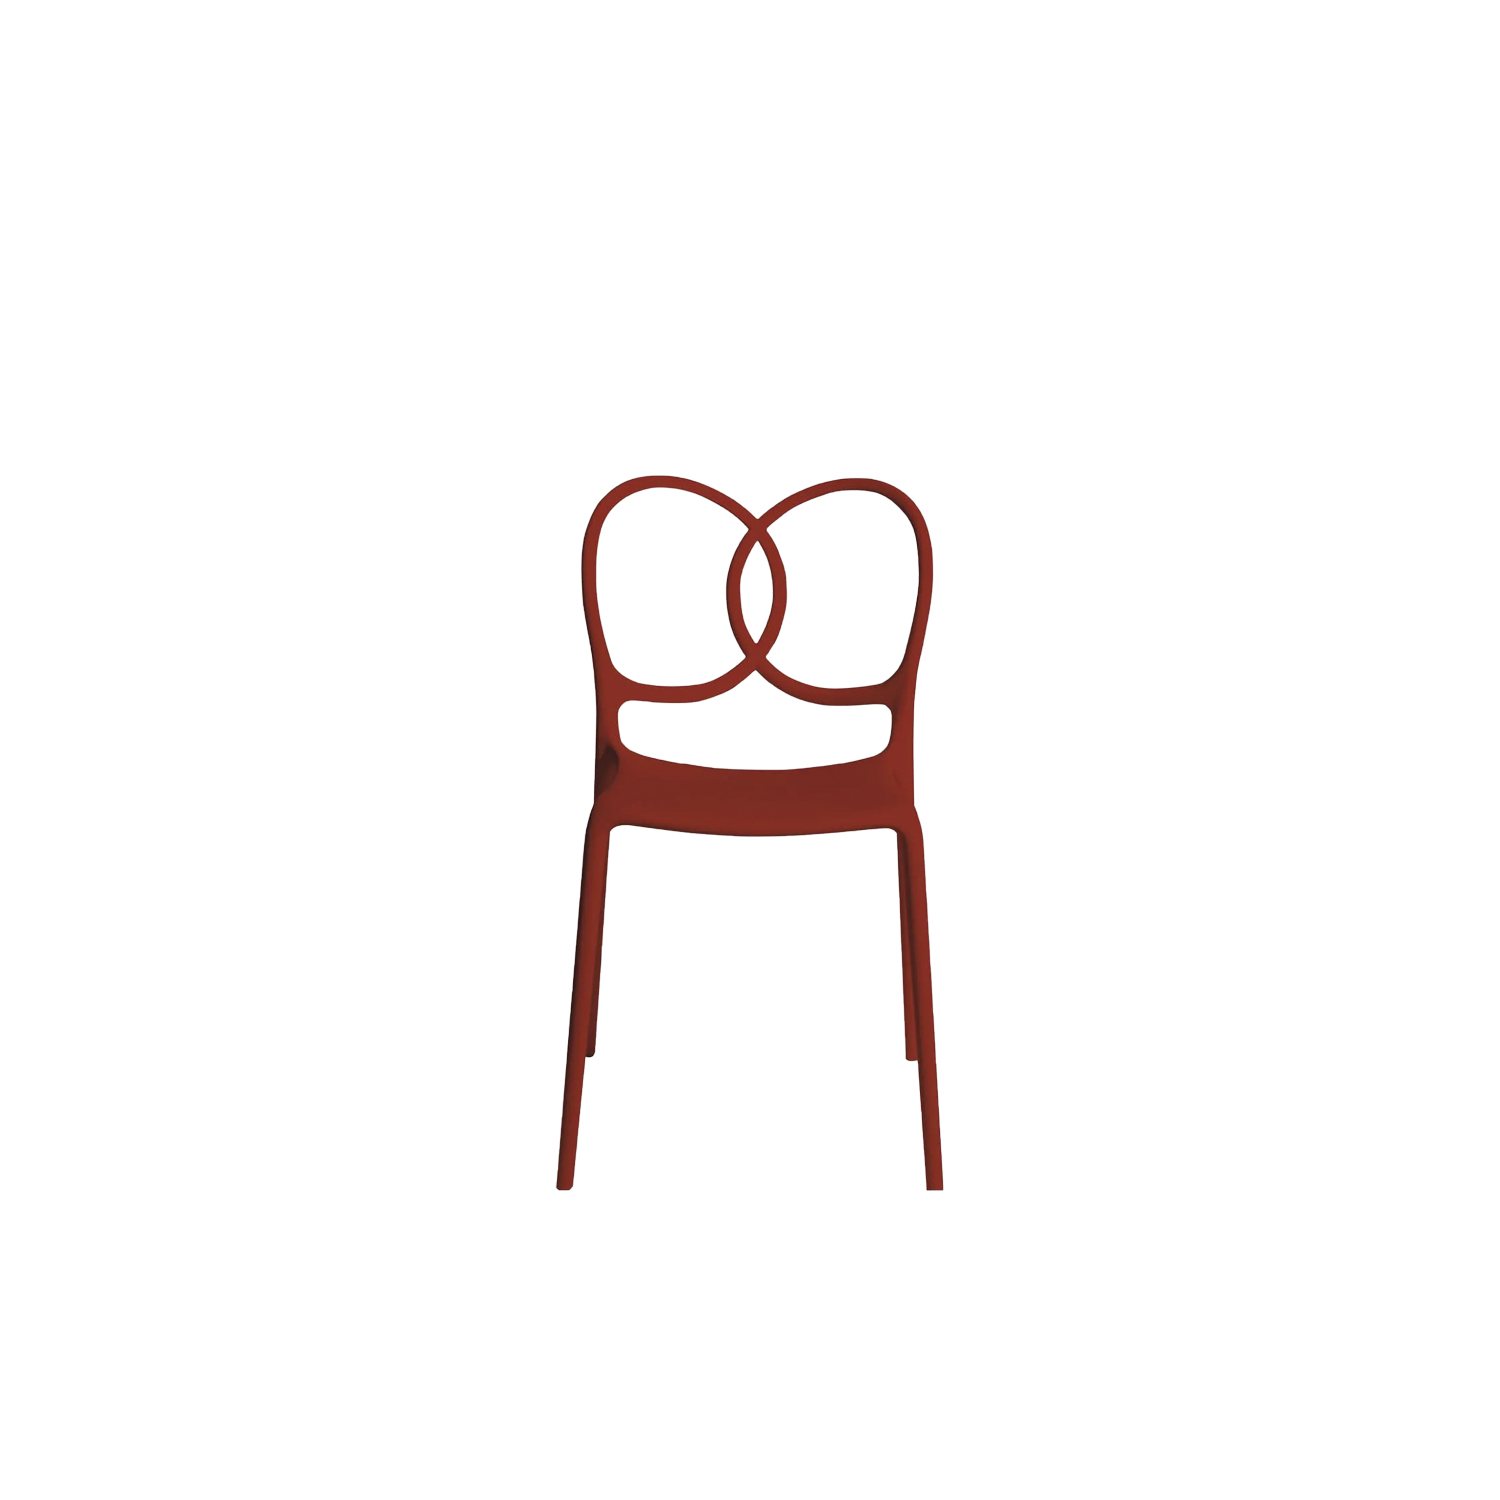 "Sissi Chair - Sissi is a sculptural, very versatile, self- centred and contemporary piece. ""Its modern design winks cheekily at the past and at the female world. The merging and intersecting rings look as if they have been bent by the hand of the viennese craftsmen, whom since over a century ago, would offer the world an elegant and design archetype. The connections, linked in such a sensual way, turn sissi into a refined and sculptural piece, just like the ultimate viennese chair - famous for its wooden curves- it is inspired by. Just like a confident, self-assured women changes her clothes to suit her mood, this chair is complemented by an essential part of its design, the seat cover.""